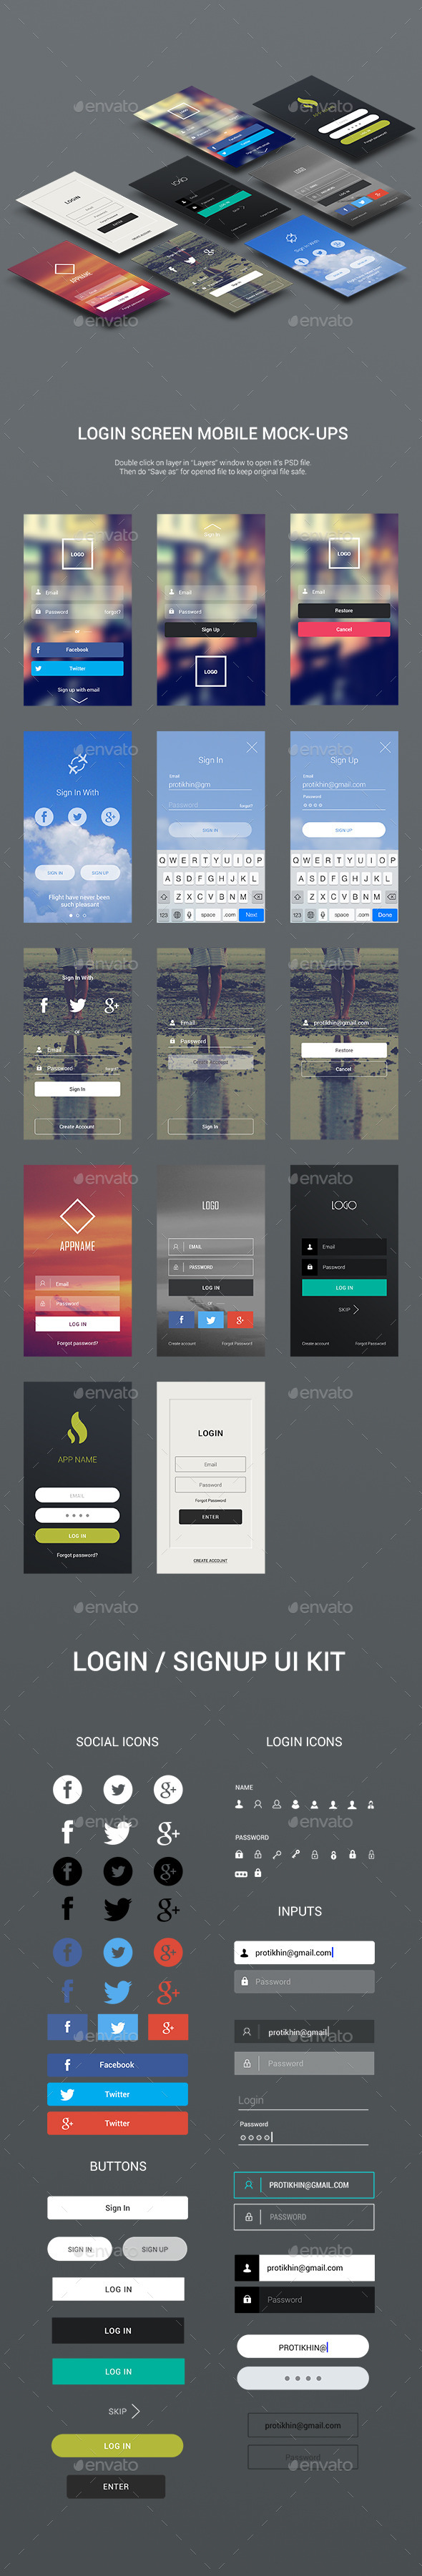 Flat Login Screen Mock-ups and Login UI Kit - User Interfaces Web Elements